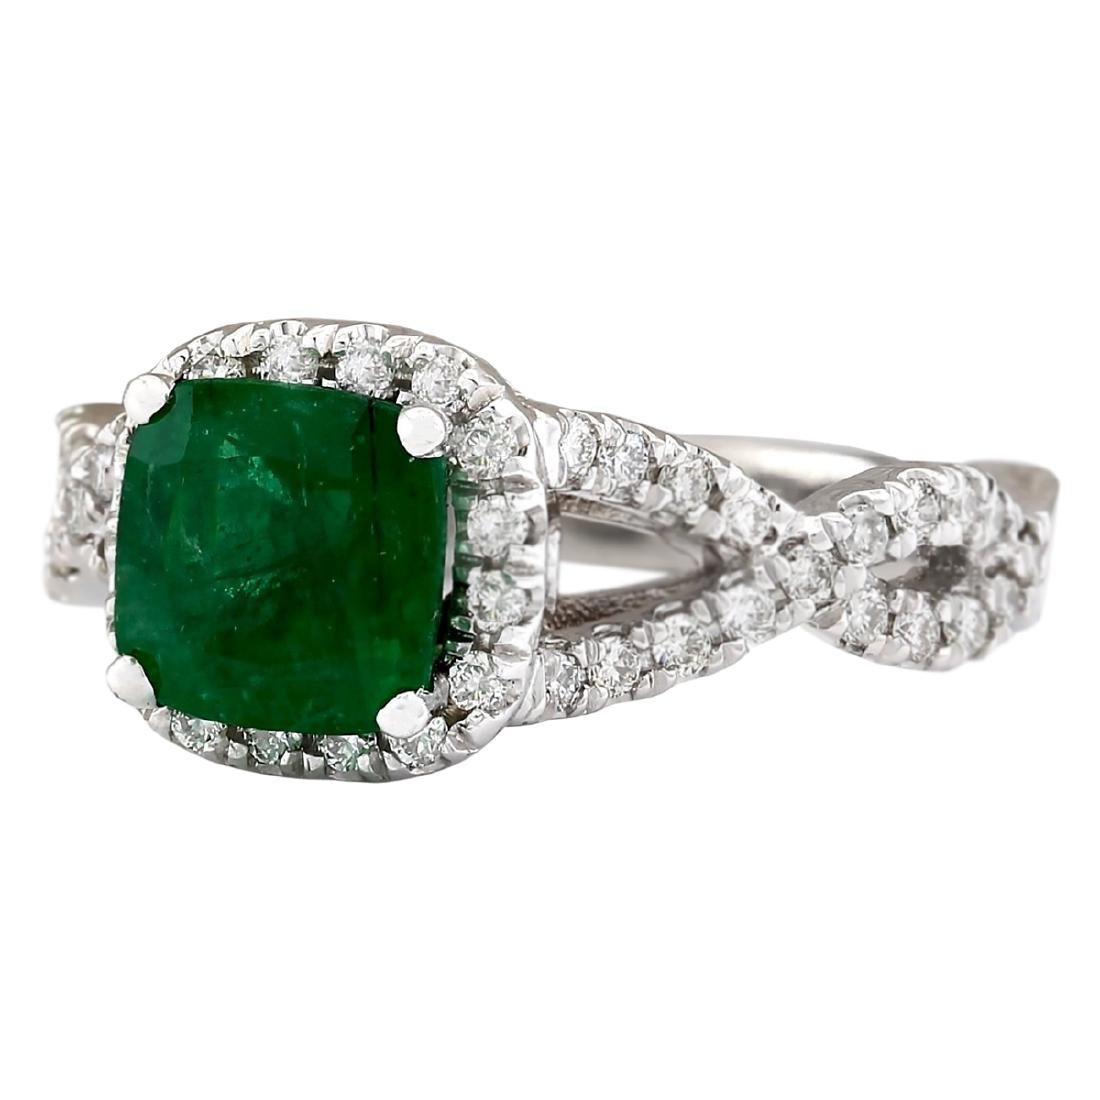 2.49 CTW Natural Emerald And Diamond Ring In 18K White - 2